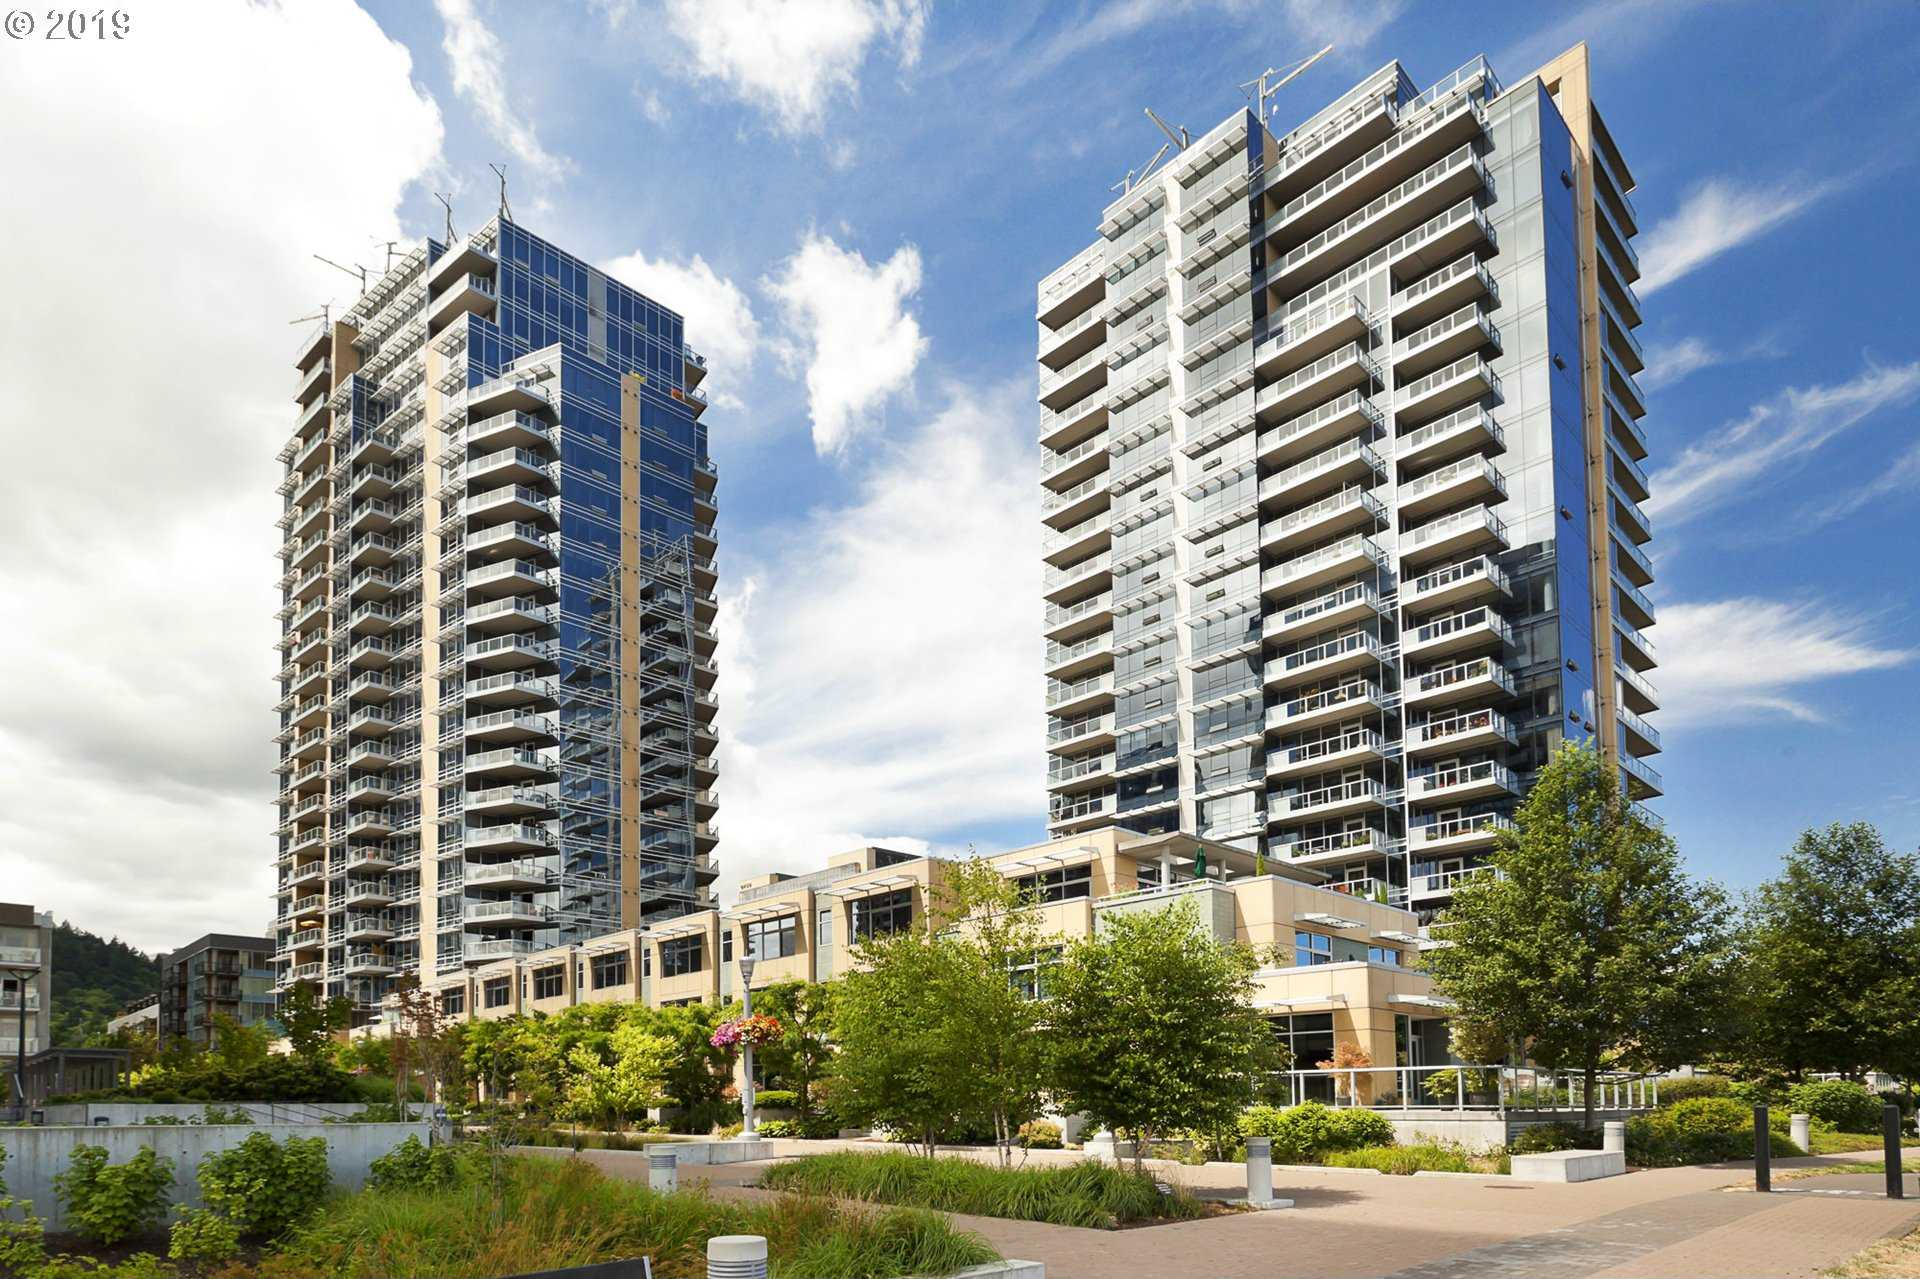 $1,900,000 - 3Br/2Ba -  for Sale in South Waterfront / Meriwether, Portland